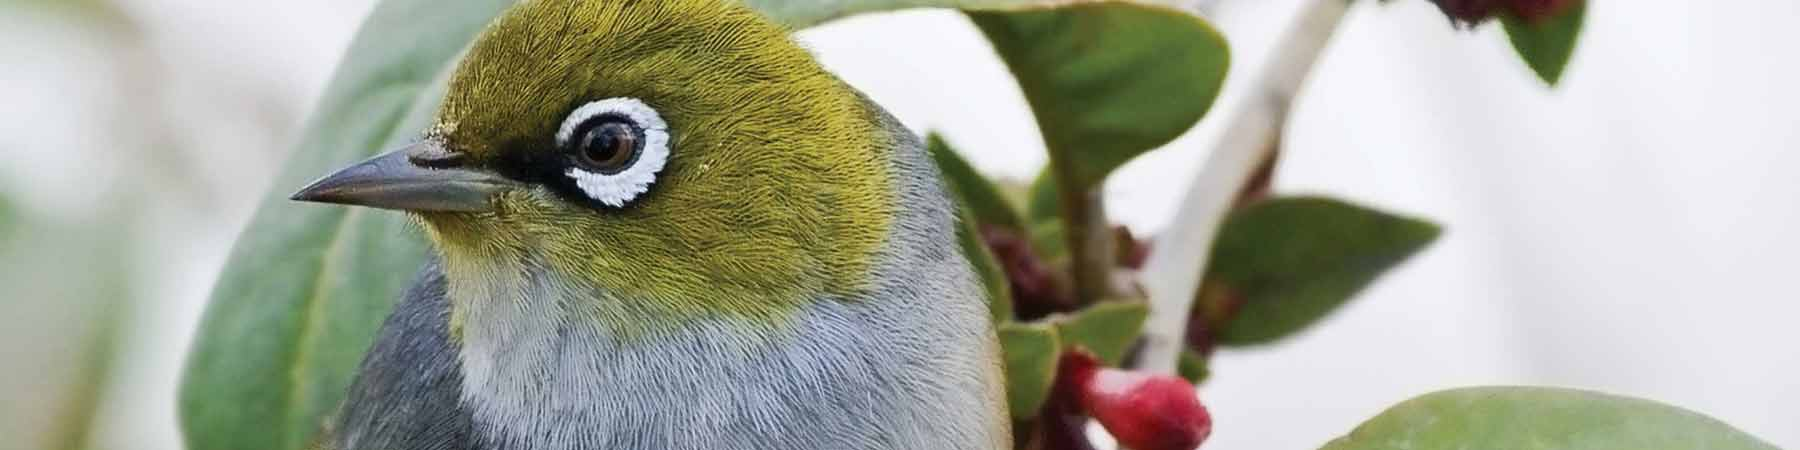 Silvereye birds are regular vistors to our National Parks